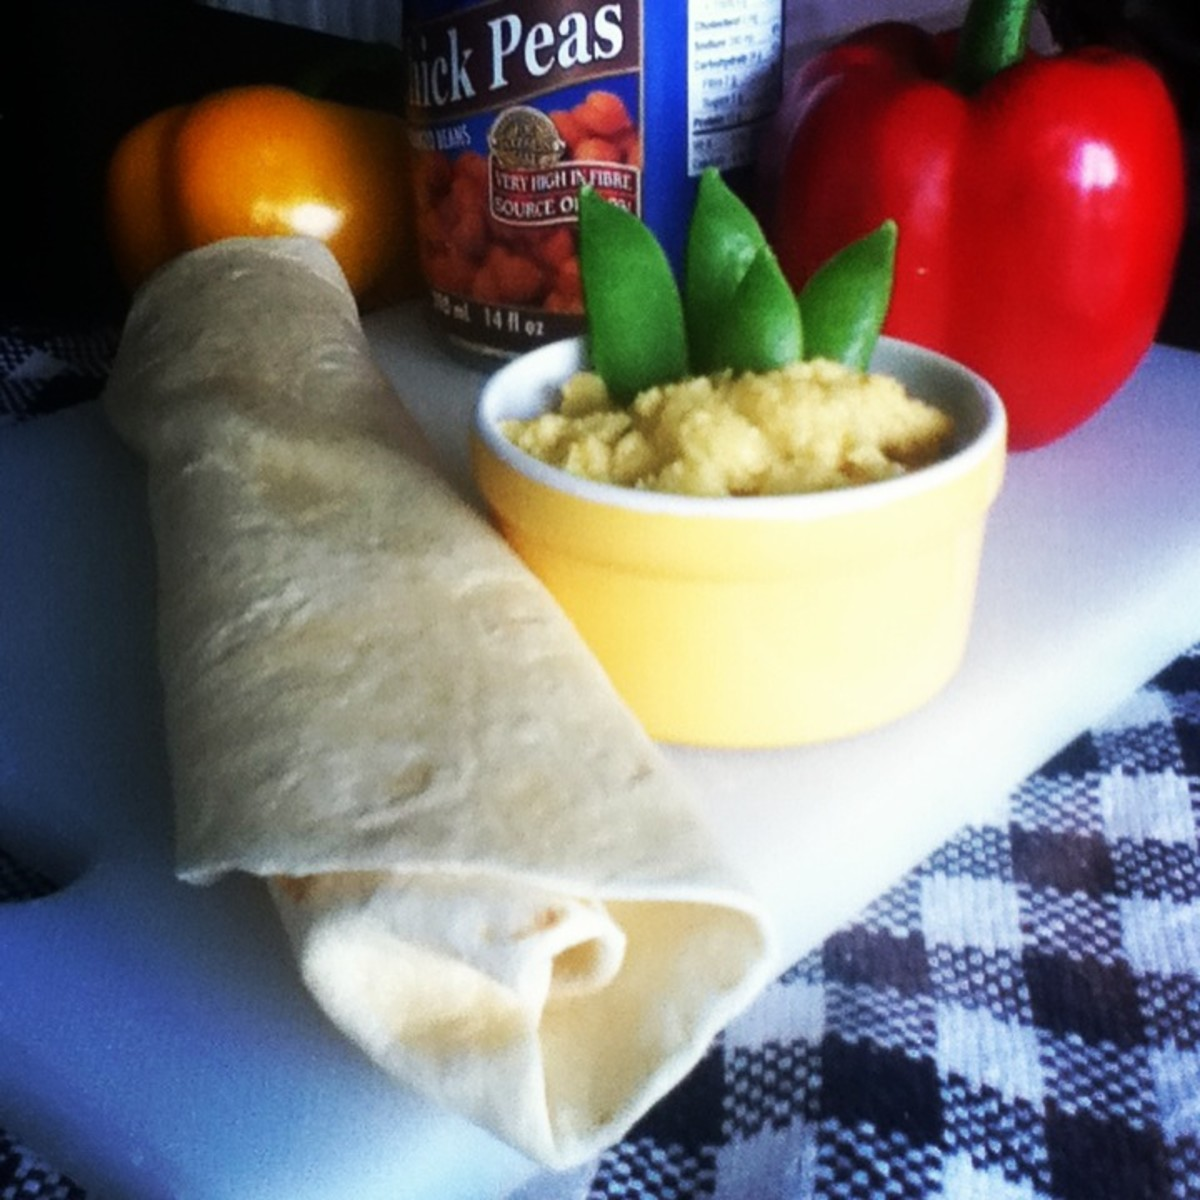 This healthy hummus recipe is quick and easy to make. Serve it as veggie or chip dip. Spread it on pita, tortillas, or sandwiches.